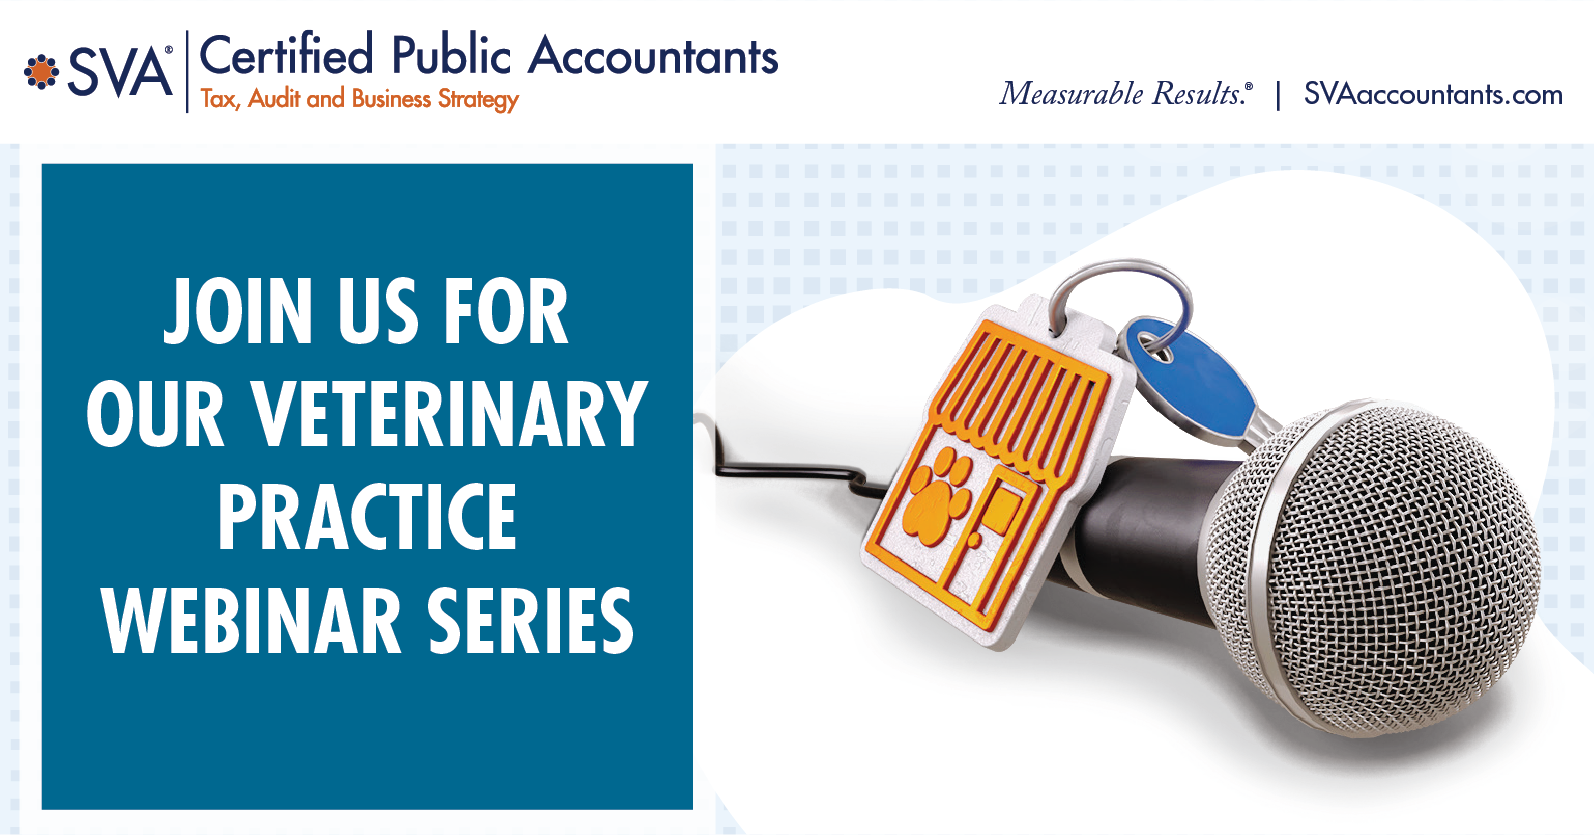 Vet Webinar Series: Clarifying the Rules on Sales and Use Tax